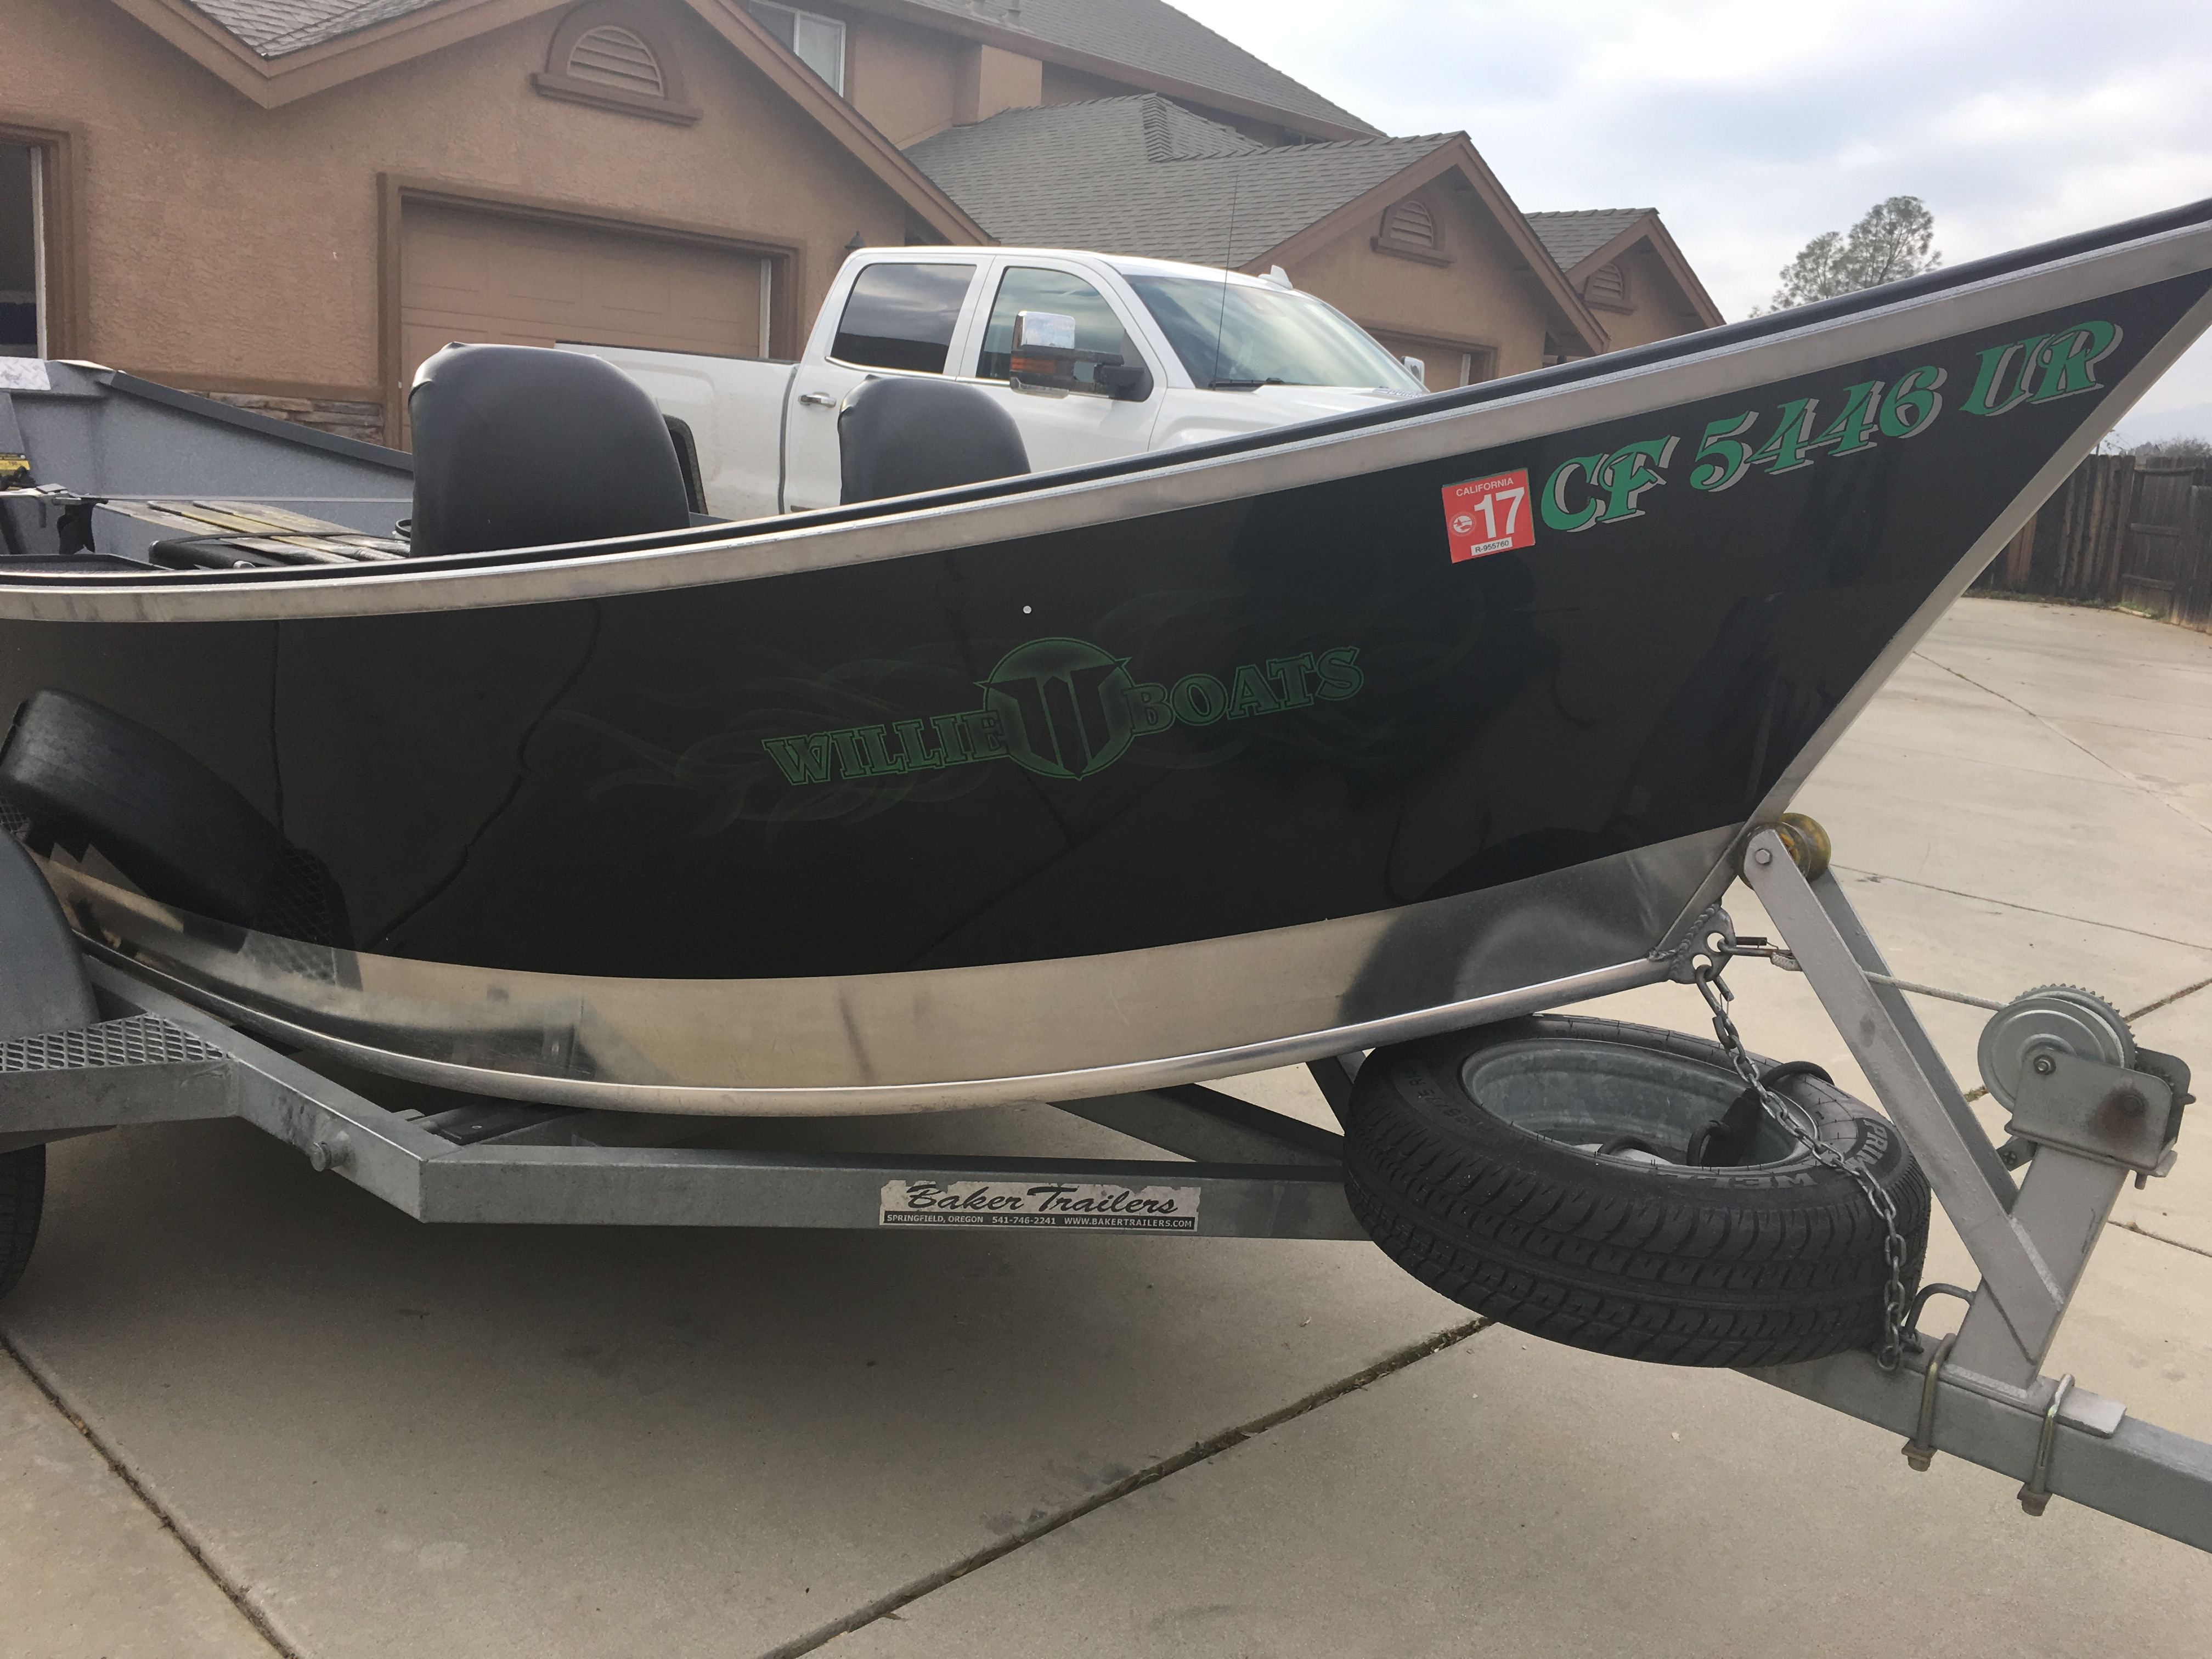 Willie Boats For Sale >> 2010 17X60 Willie Drift Boat $11,000 - Willie Boats